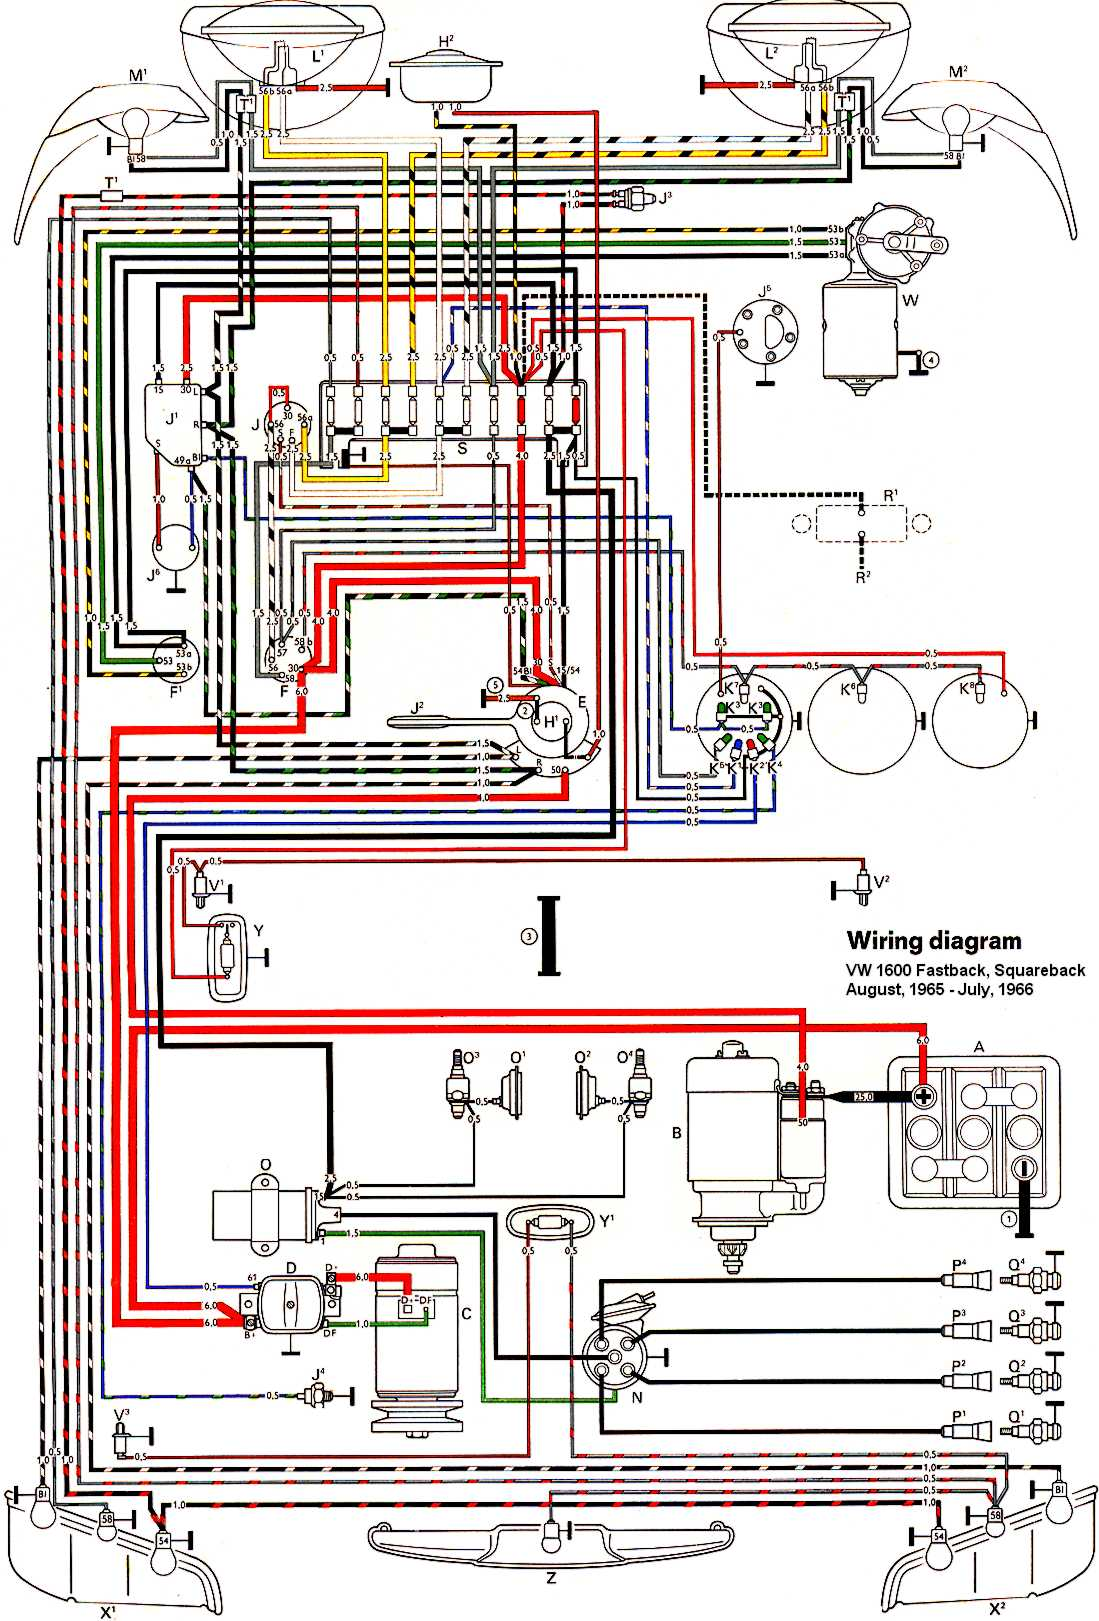 wiring diagram also 1973 vw super beetle wiring diagram wiring rh linxglobal co 73 Super Beetle Wiring Diagram 69 VW Beetle Wiring Diagram